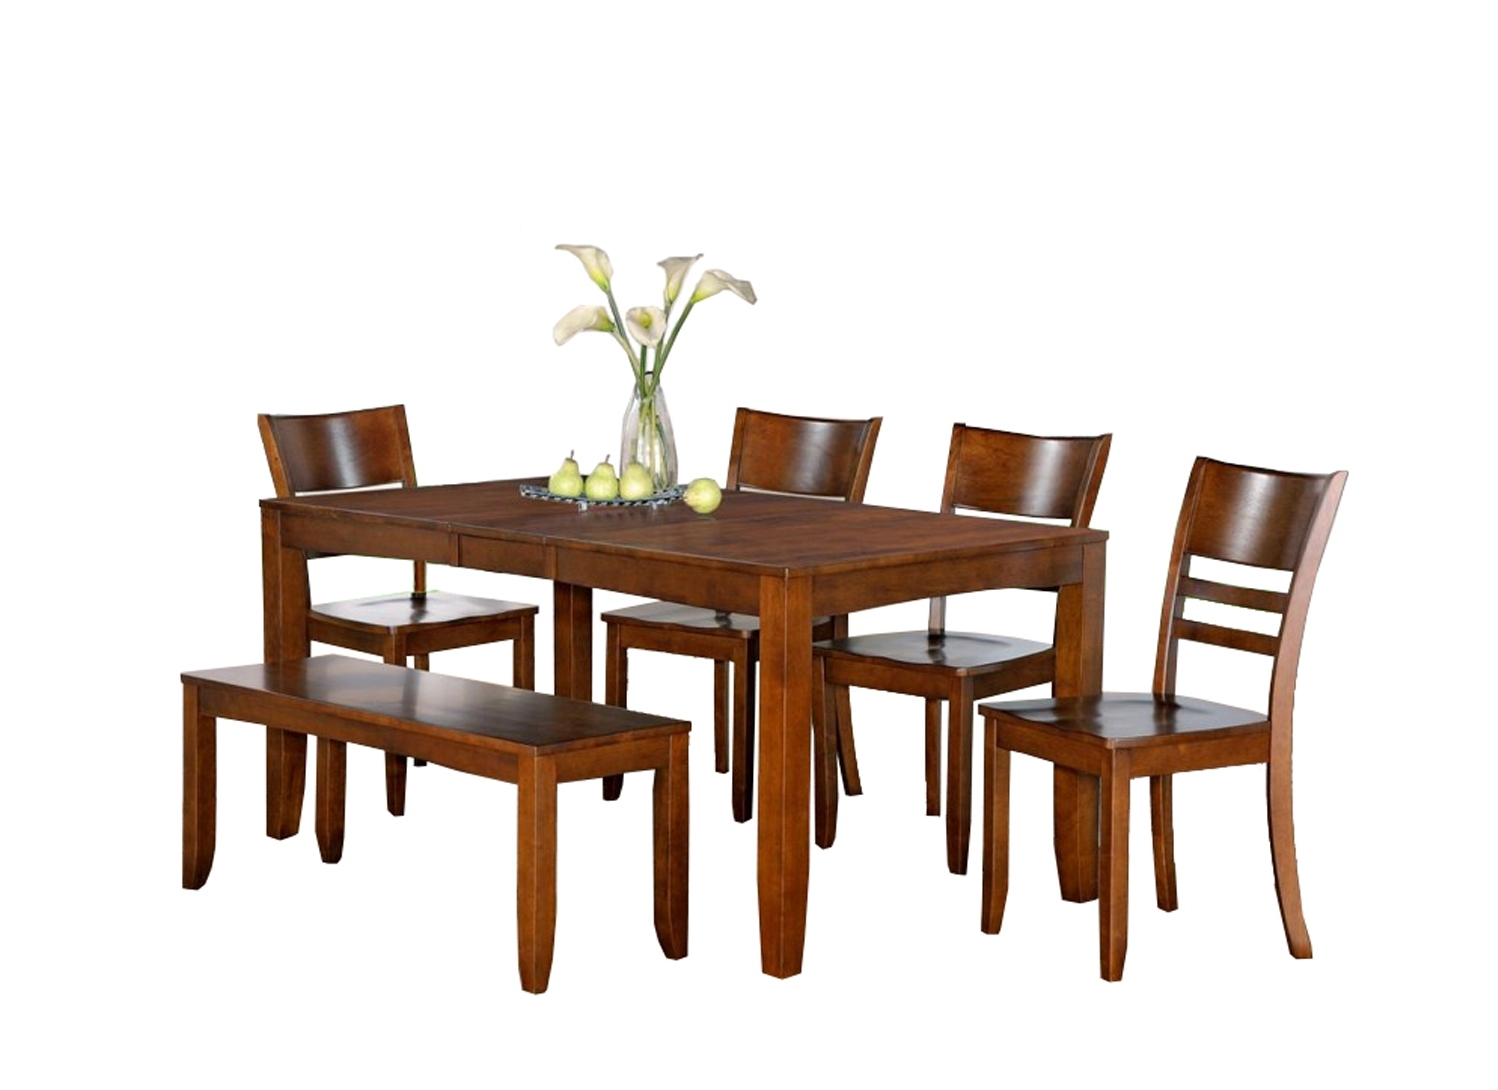 Indian Dining Tables And Chairs Intended For Most Recently Released Dining Table Manufacturers In Bangalore, Dining Table Manufacturers (View 8 of 25)